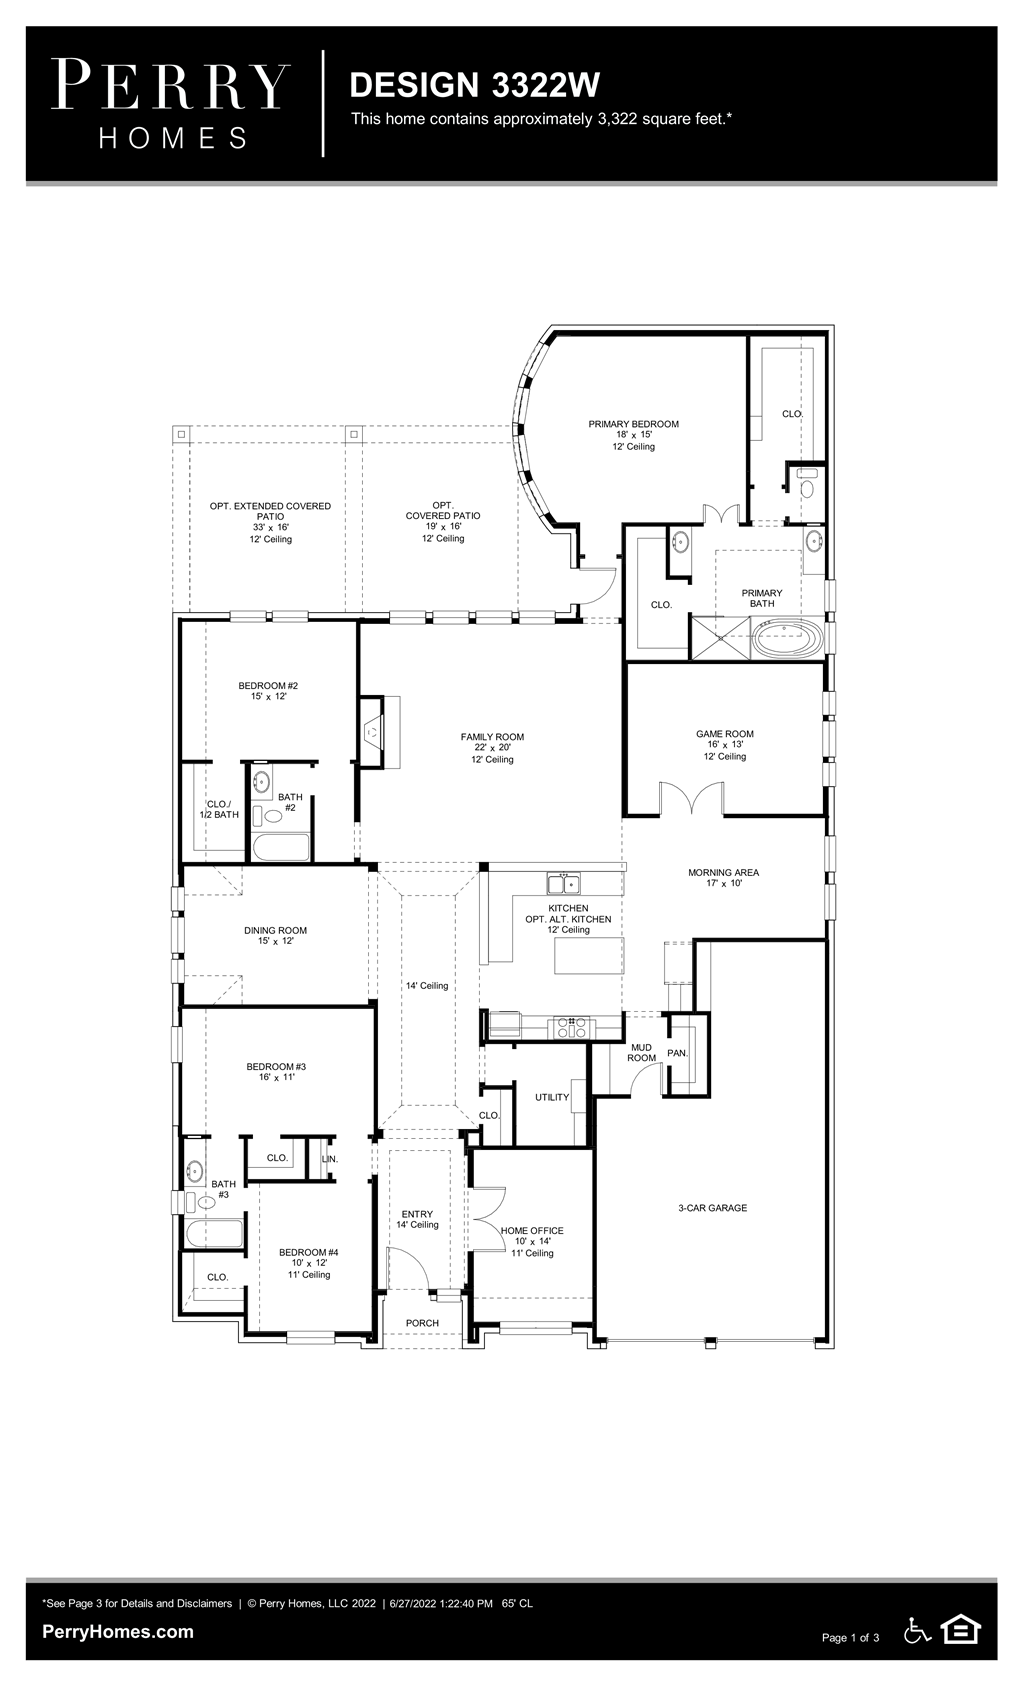 Available to build in Cross Creek Ranch 65\' | Design 3322W | Perry Homes